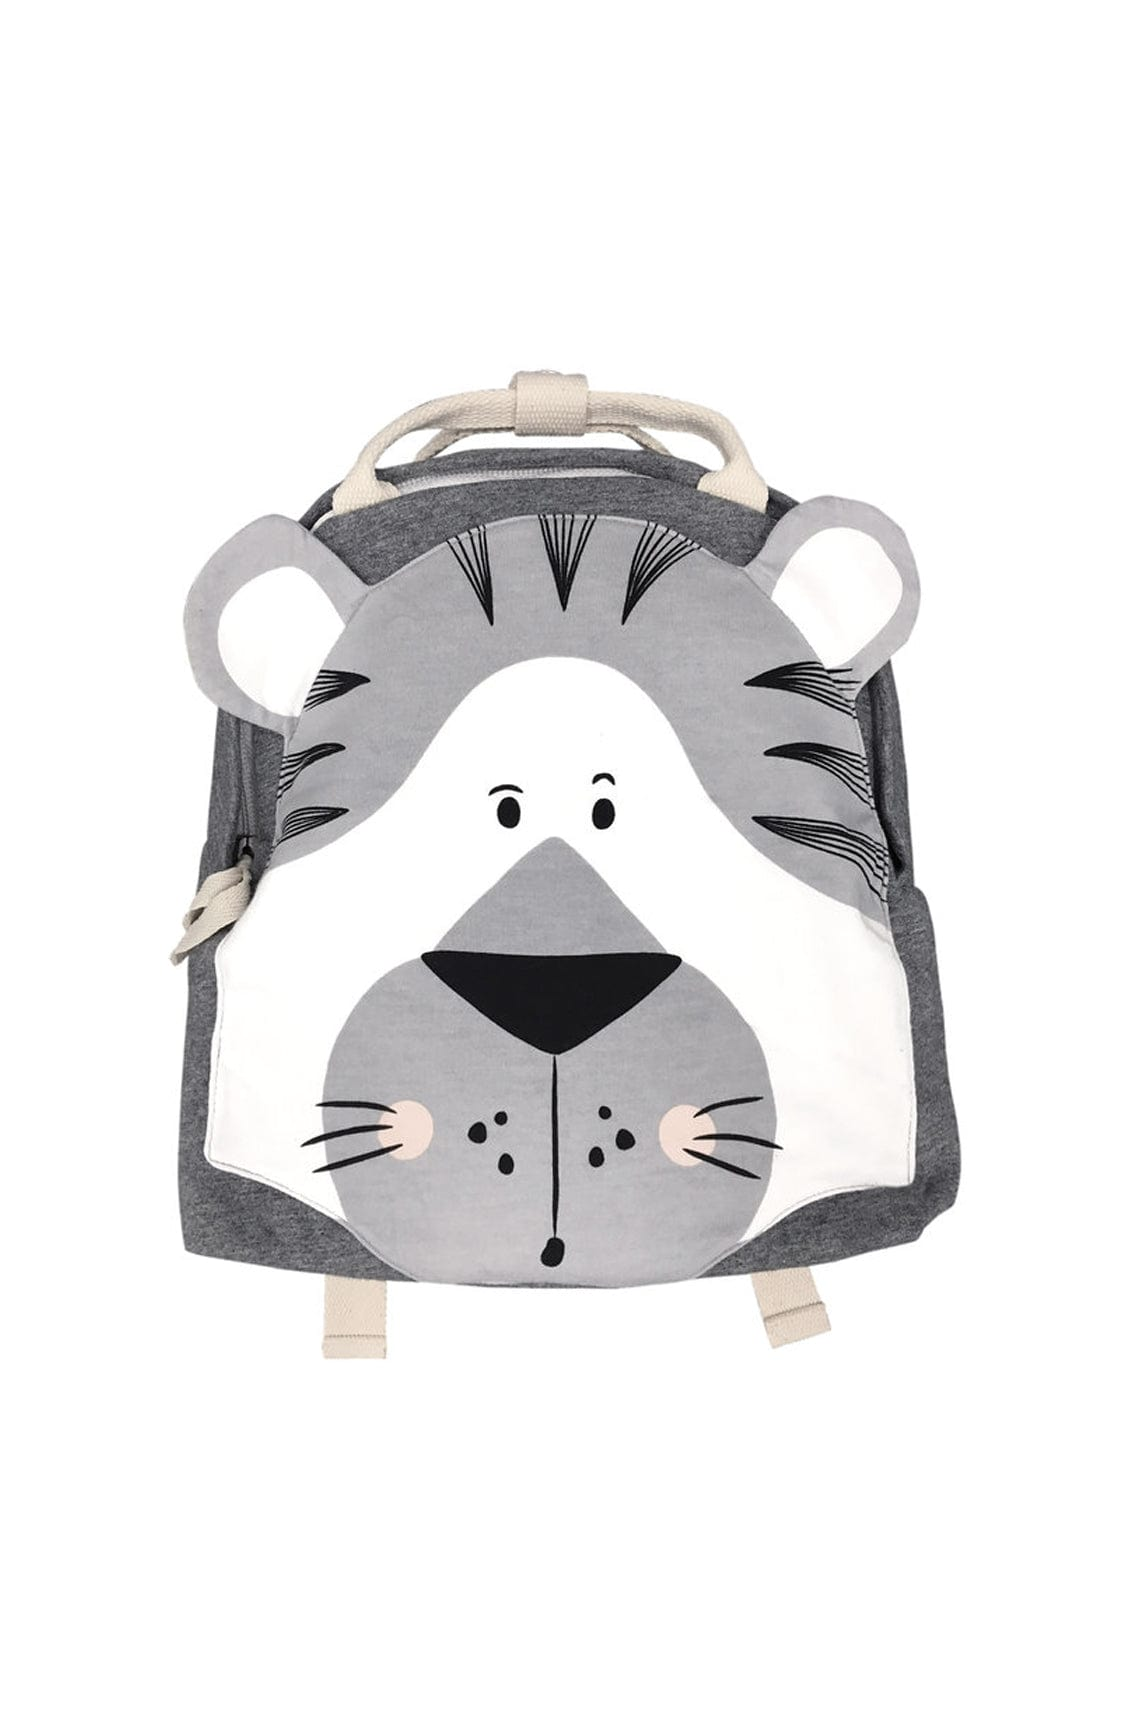 Mister Fly Tiger Back Pack - Hello Little Birdie